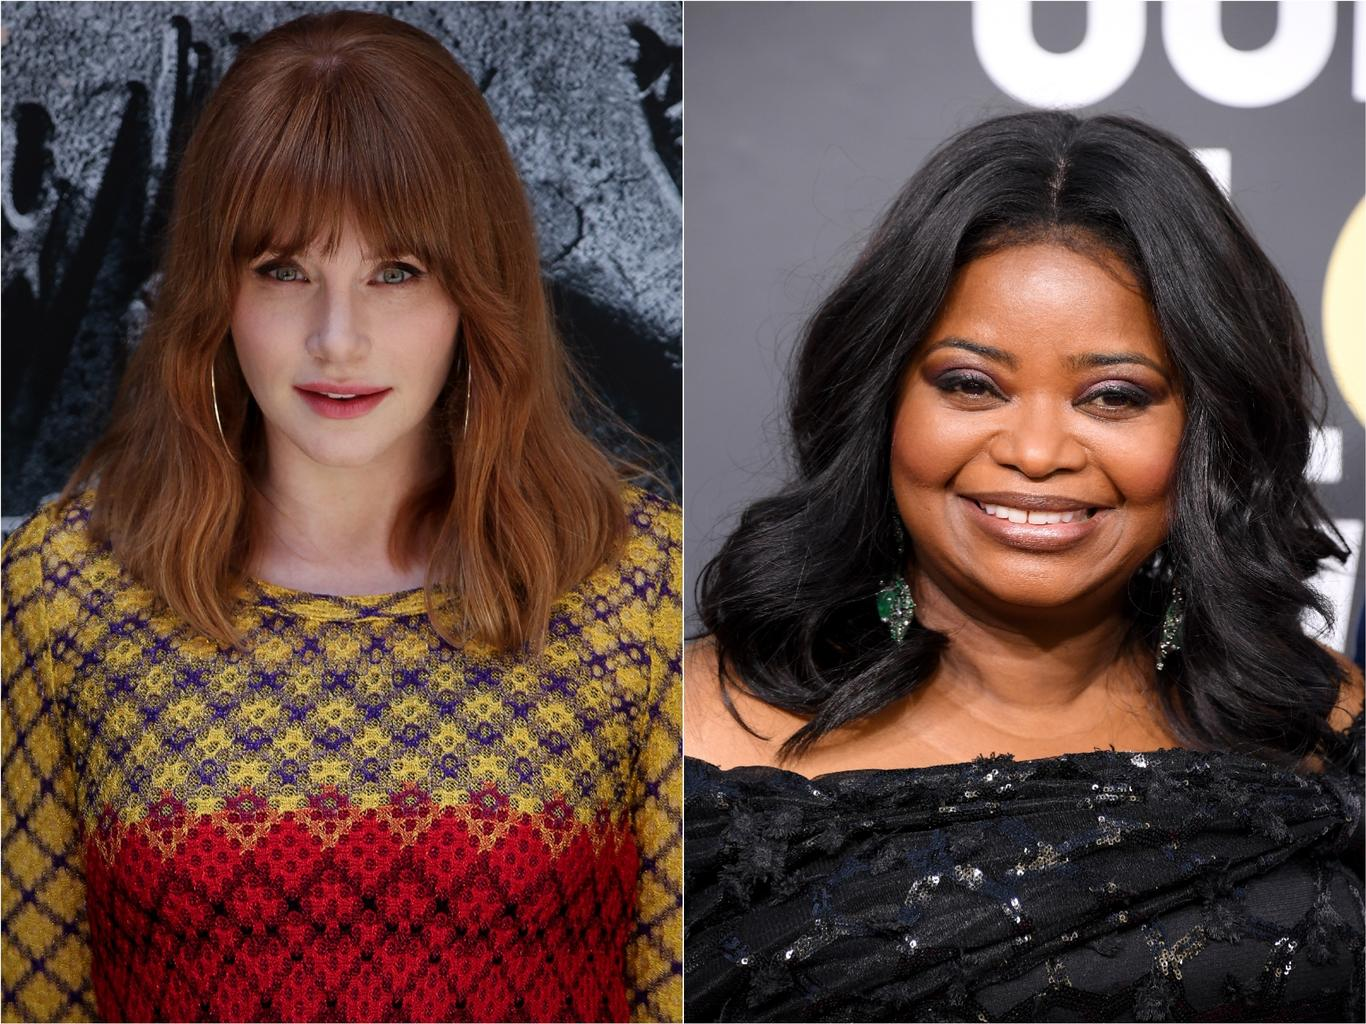 Bryce Dallas Howard And Octavia Spencer Starring In Fairytale Ending   Movies   News